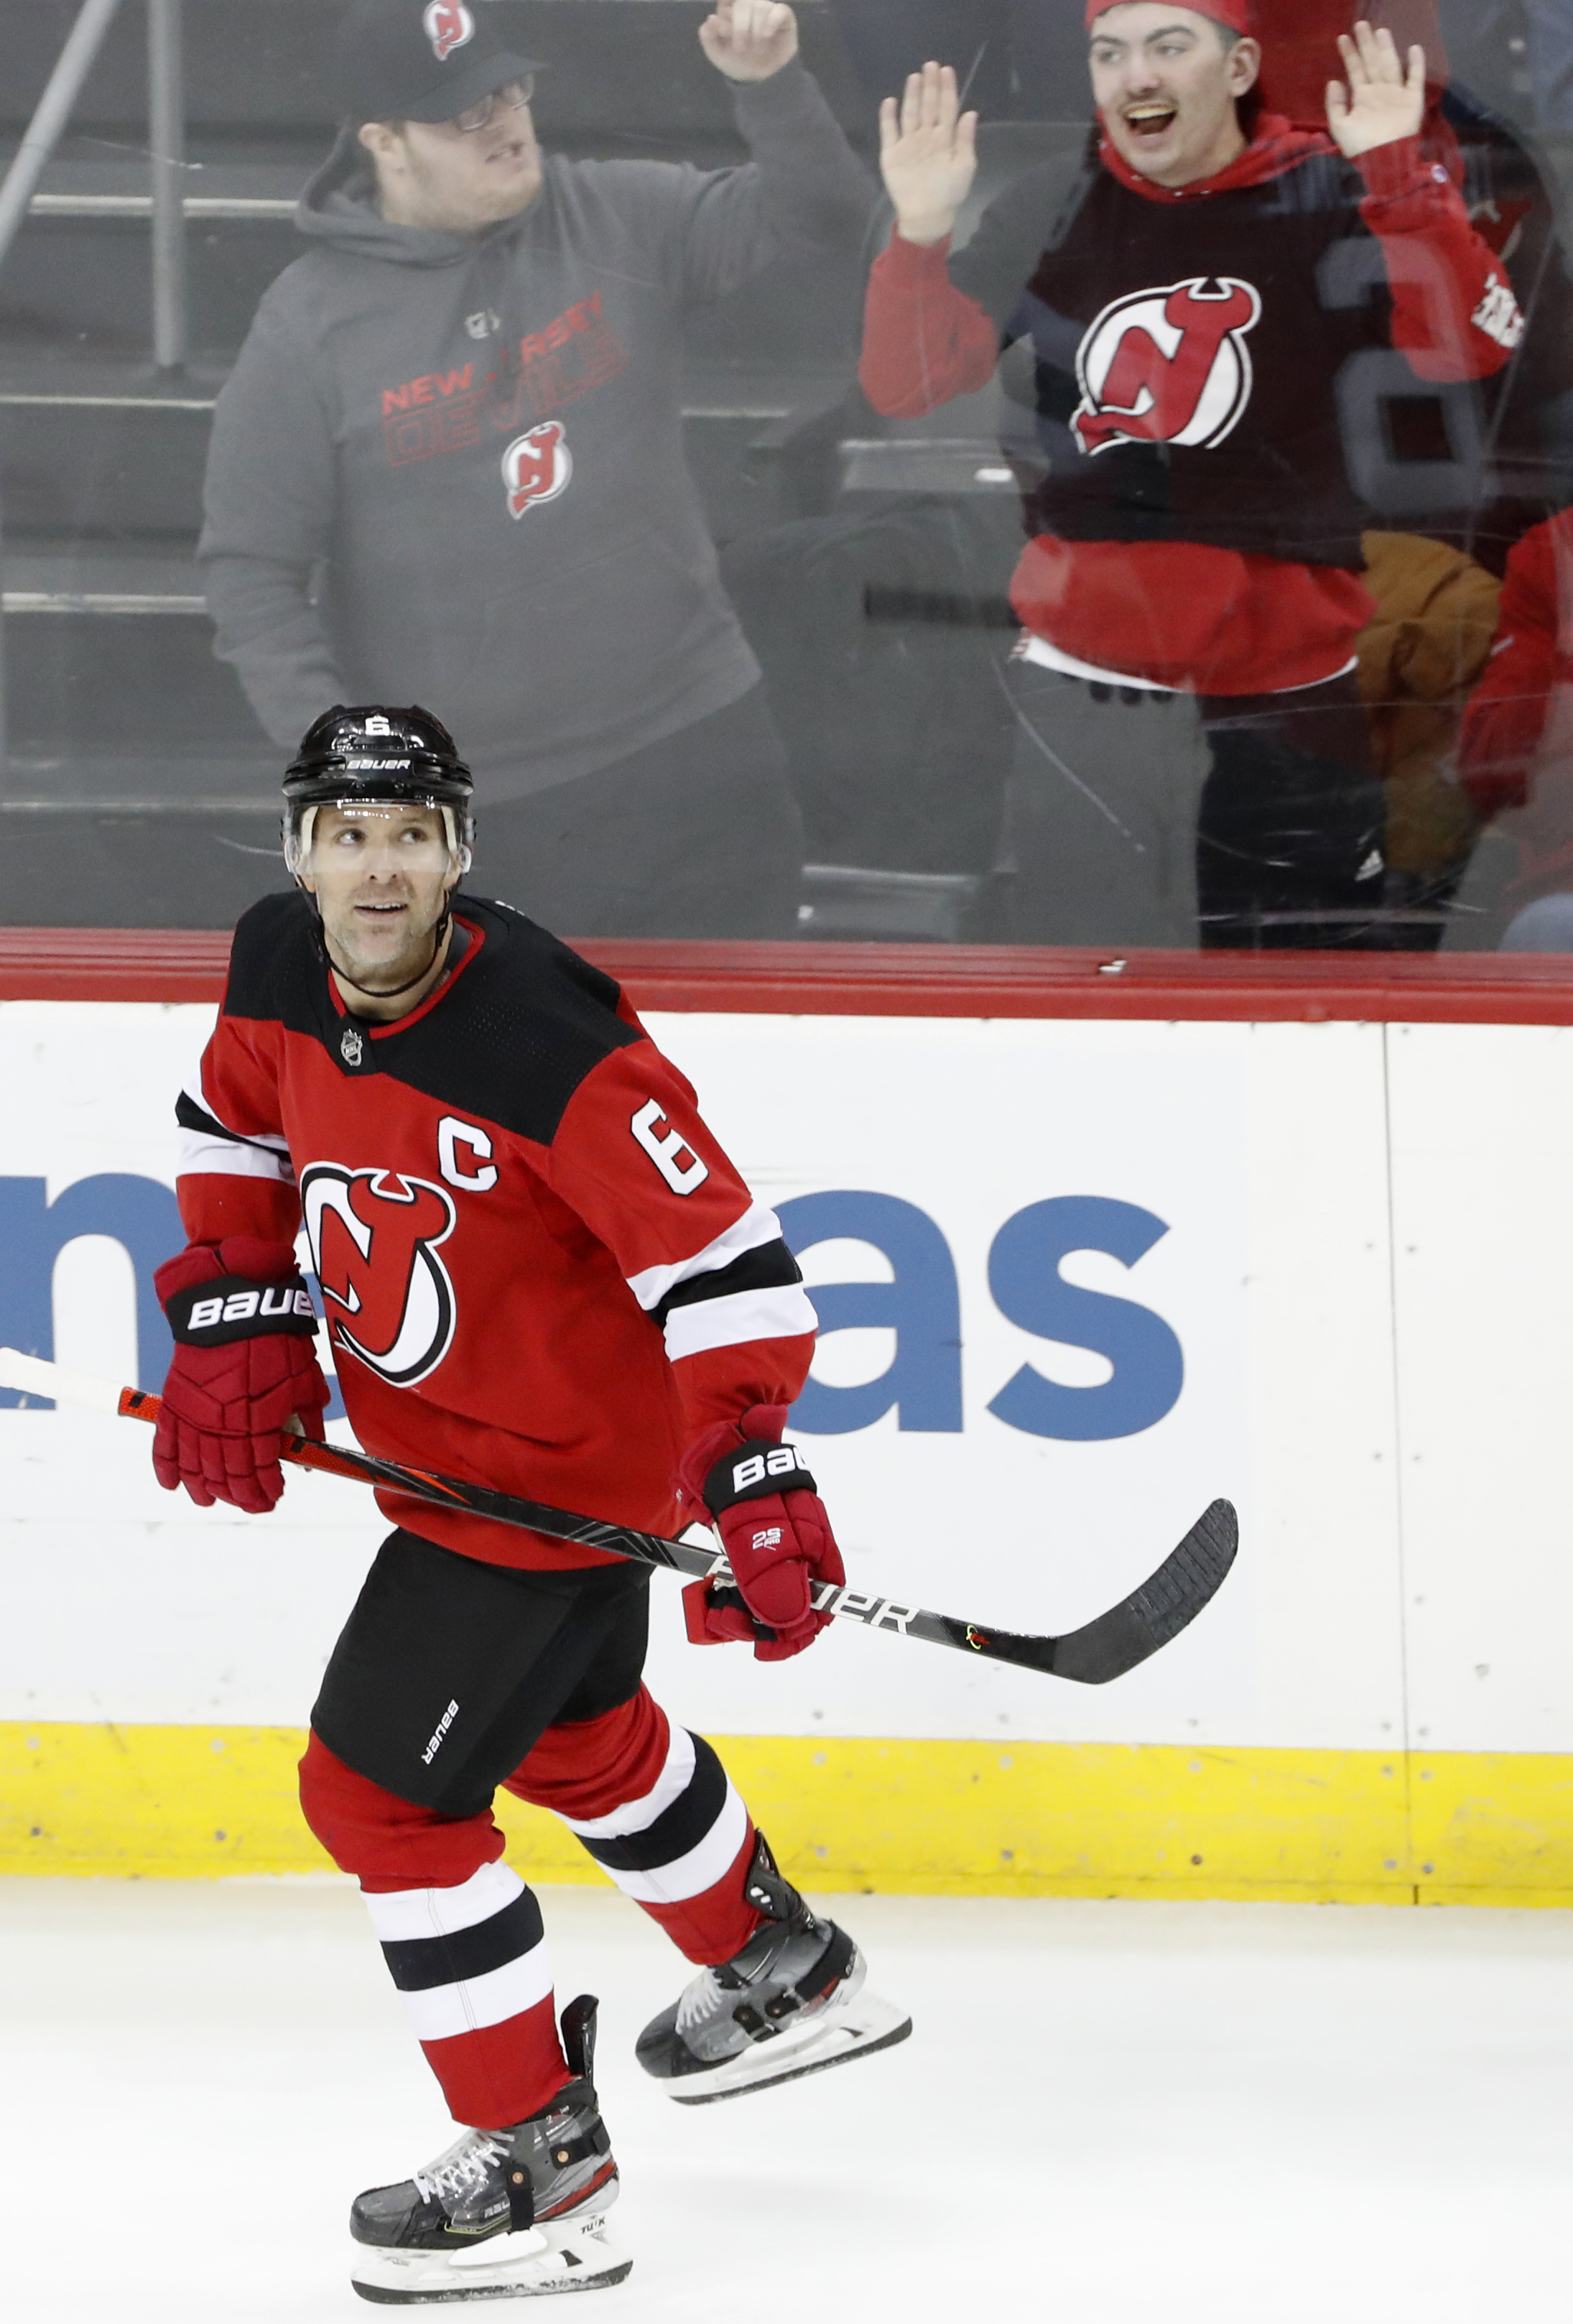 Devils trade captain Andy Greene to New York Islanders